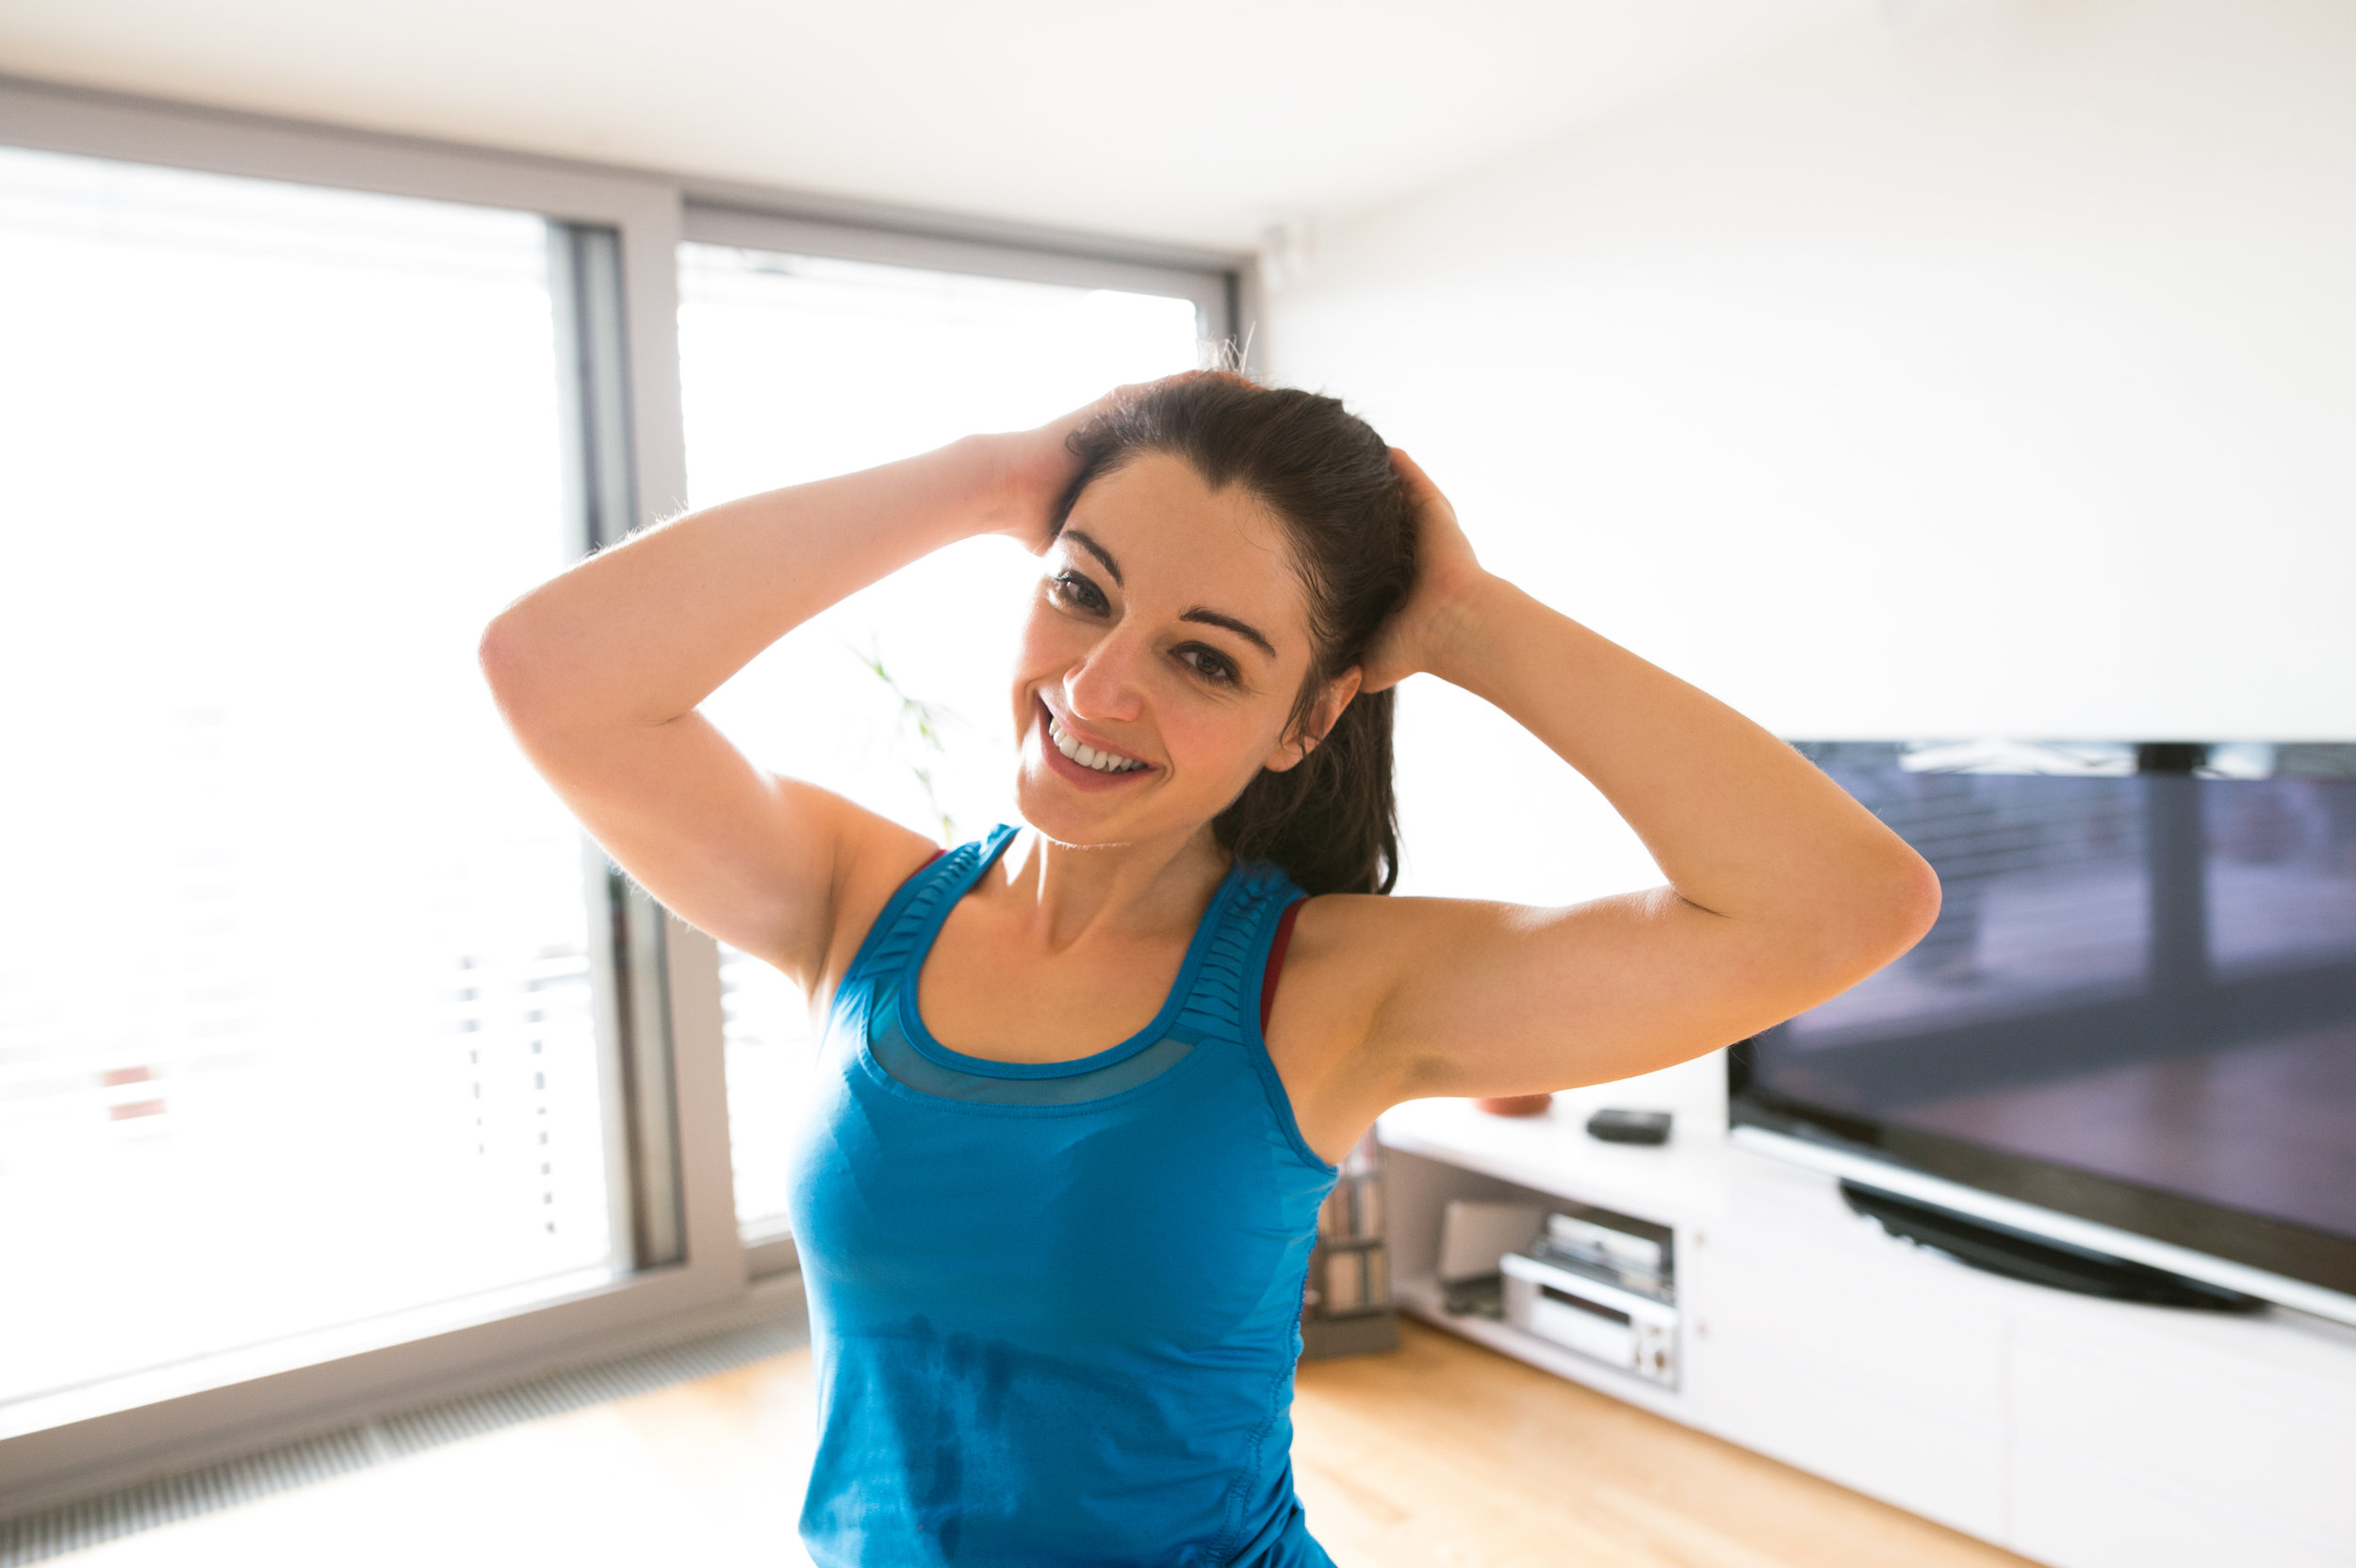 graphicstock-beautiful-young-woman-working-out-at-home-in-living-room-doing-yoga-or-pilates-exercise-stretching-neck_Bdgj44uIGb.jpg